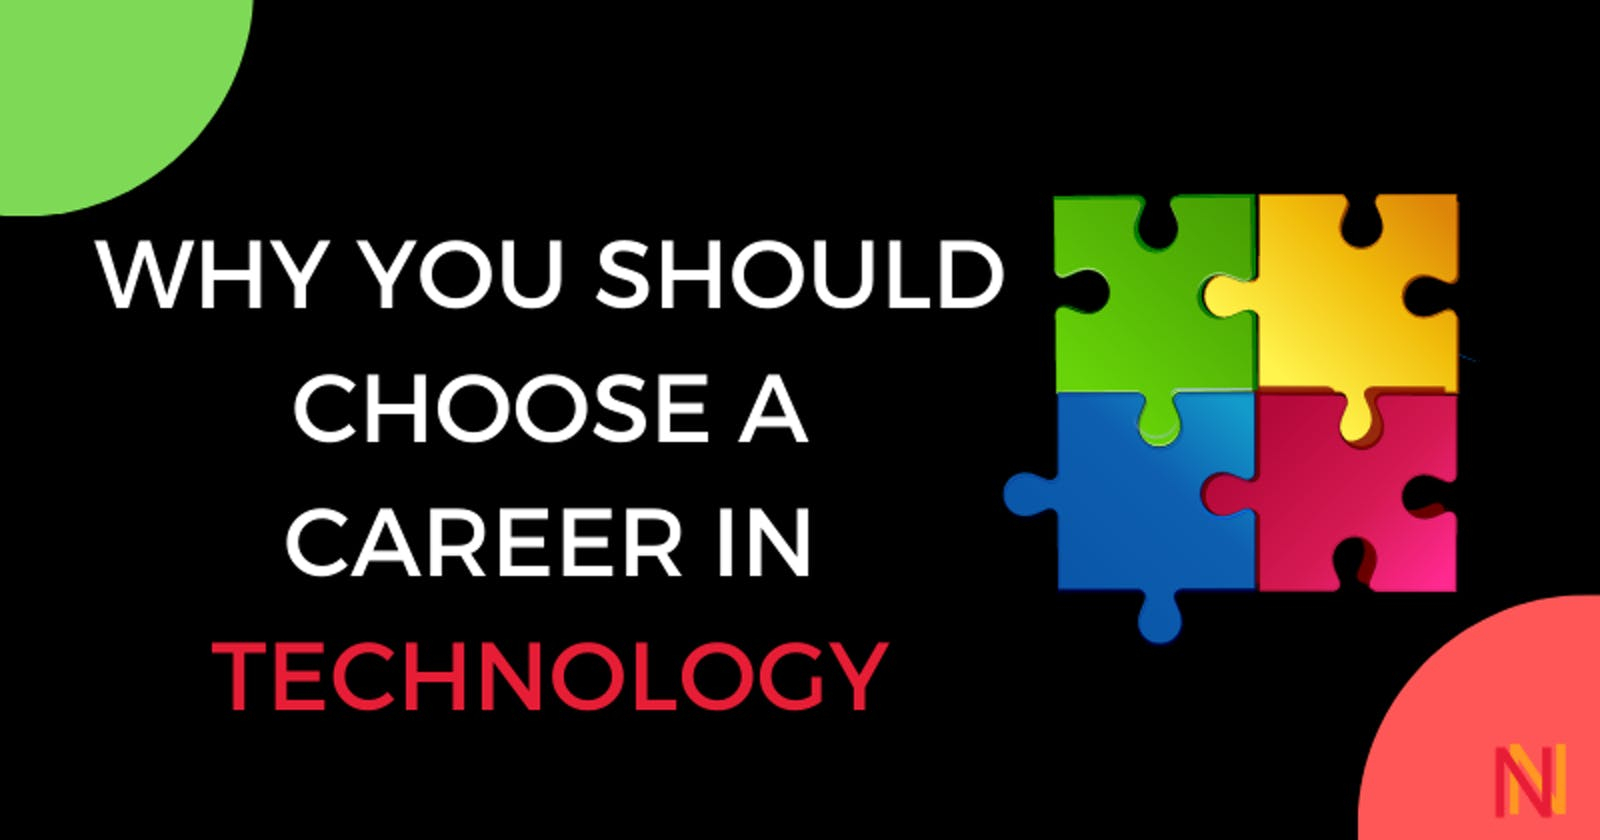 Why you should choose a career in Technology?